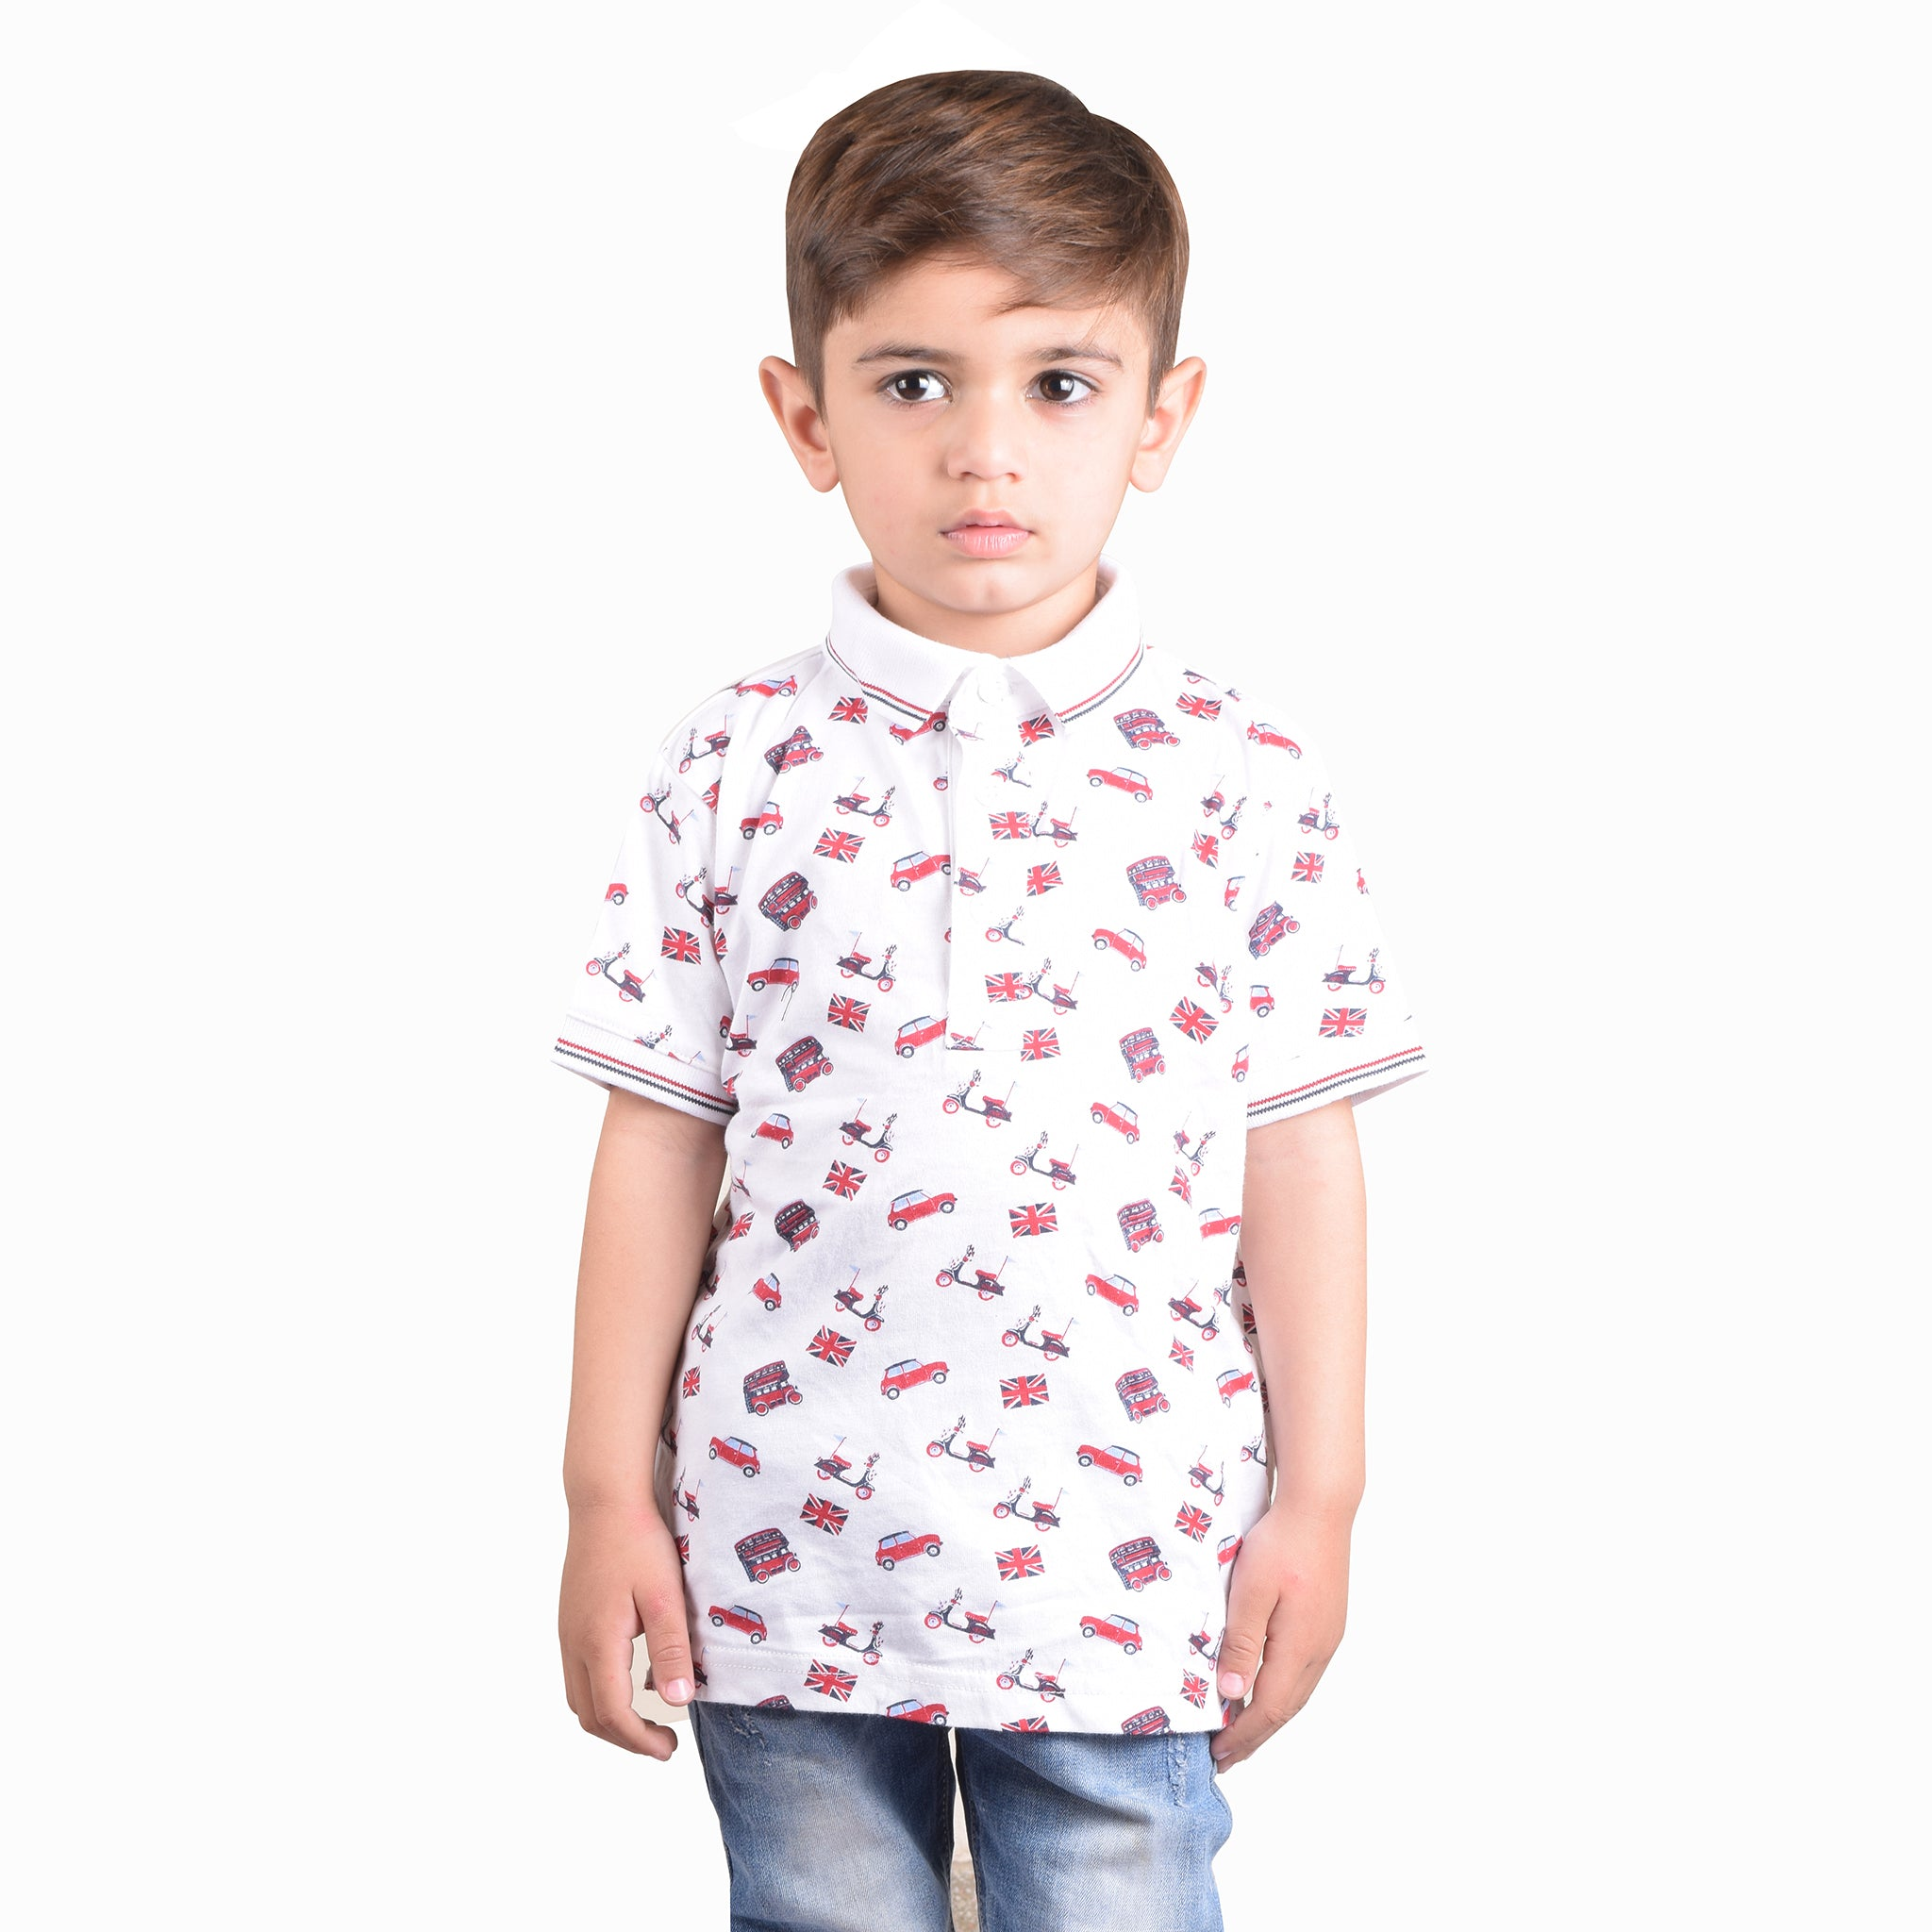 NEXT Polo Shirt For Kids-White with Allover Printing-BE4358